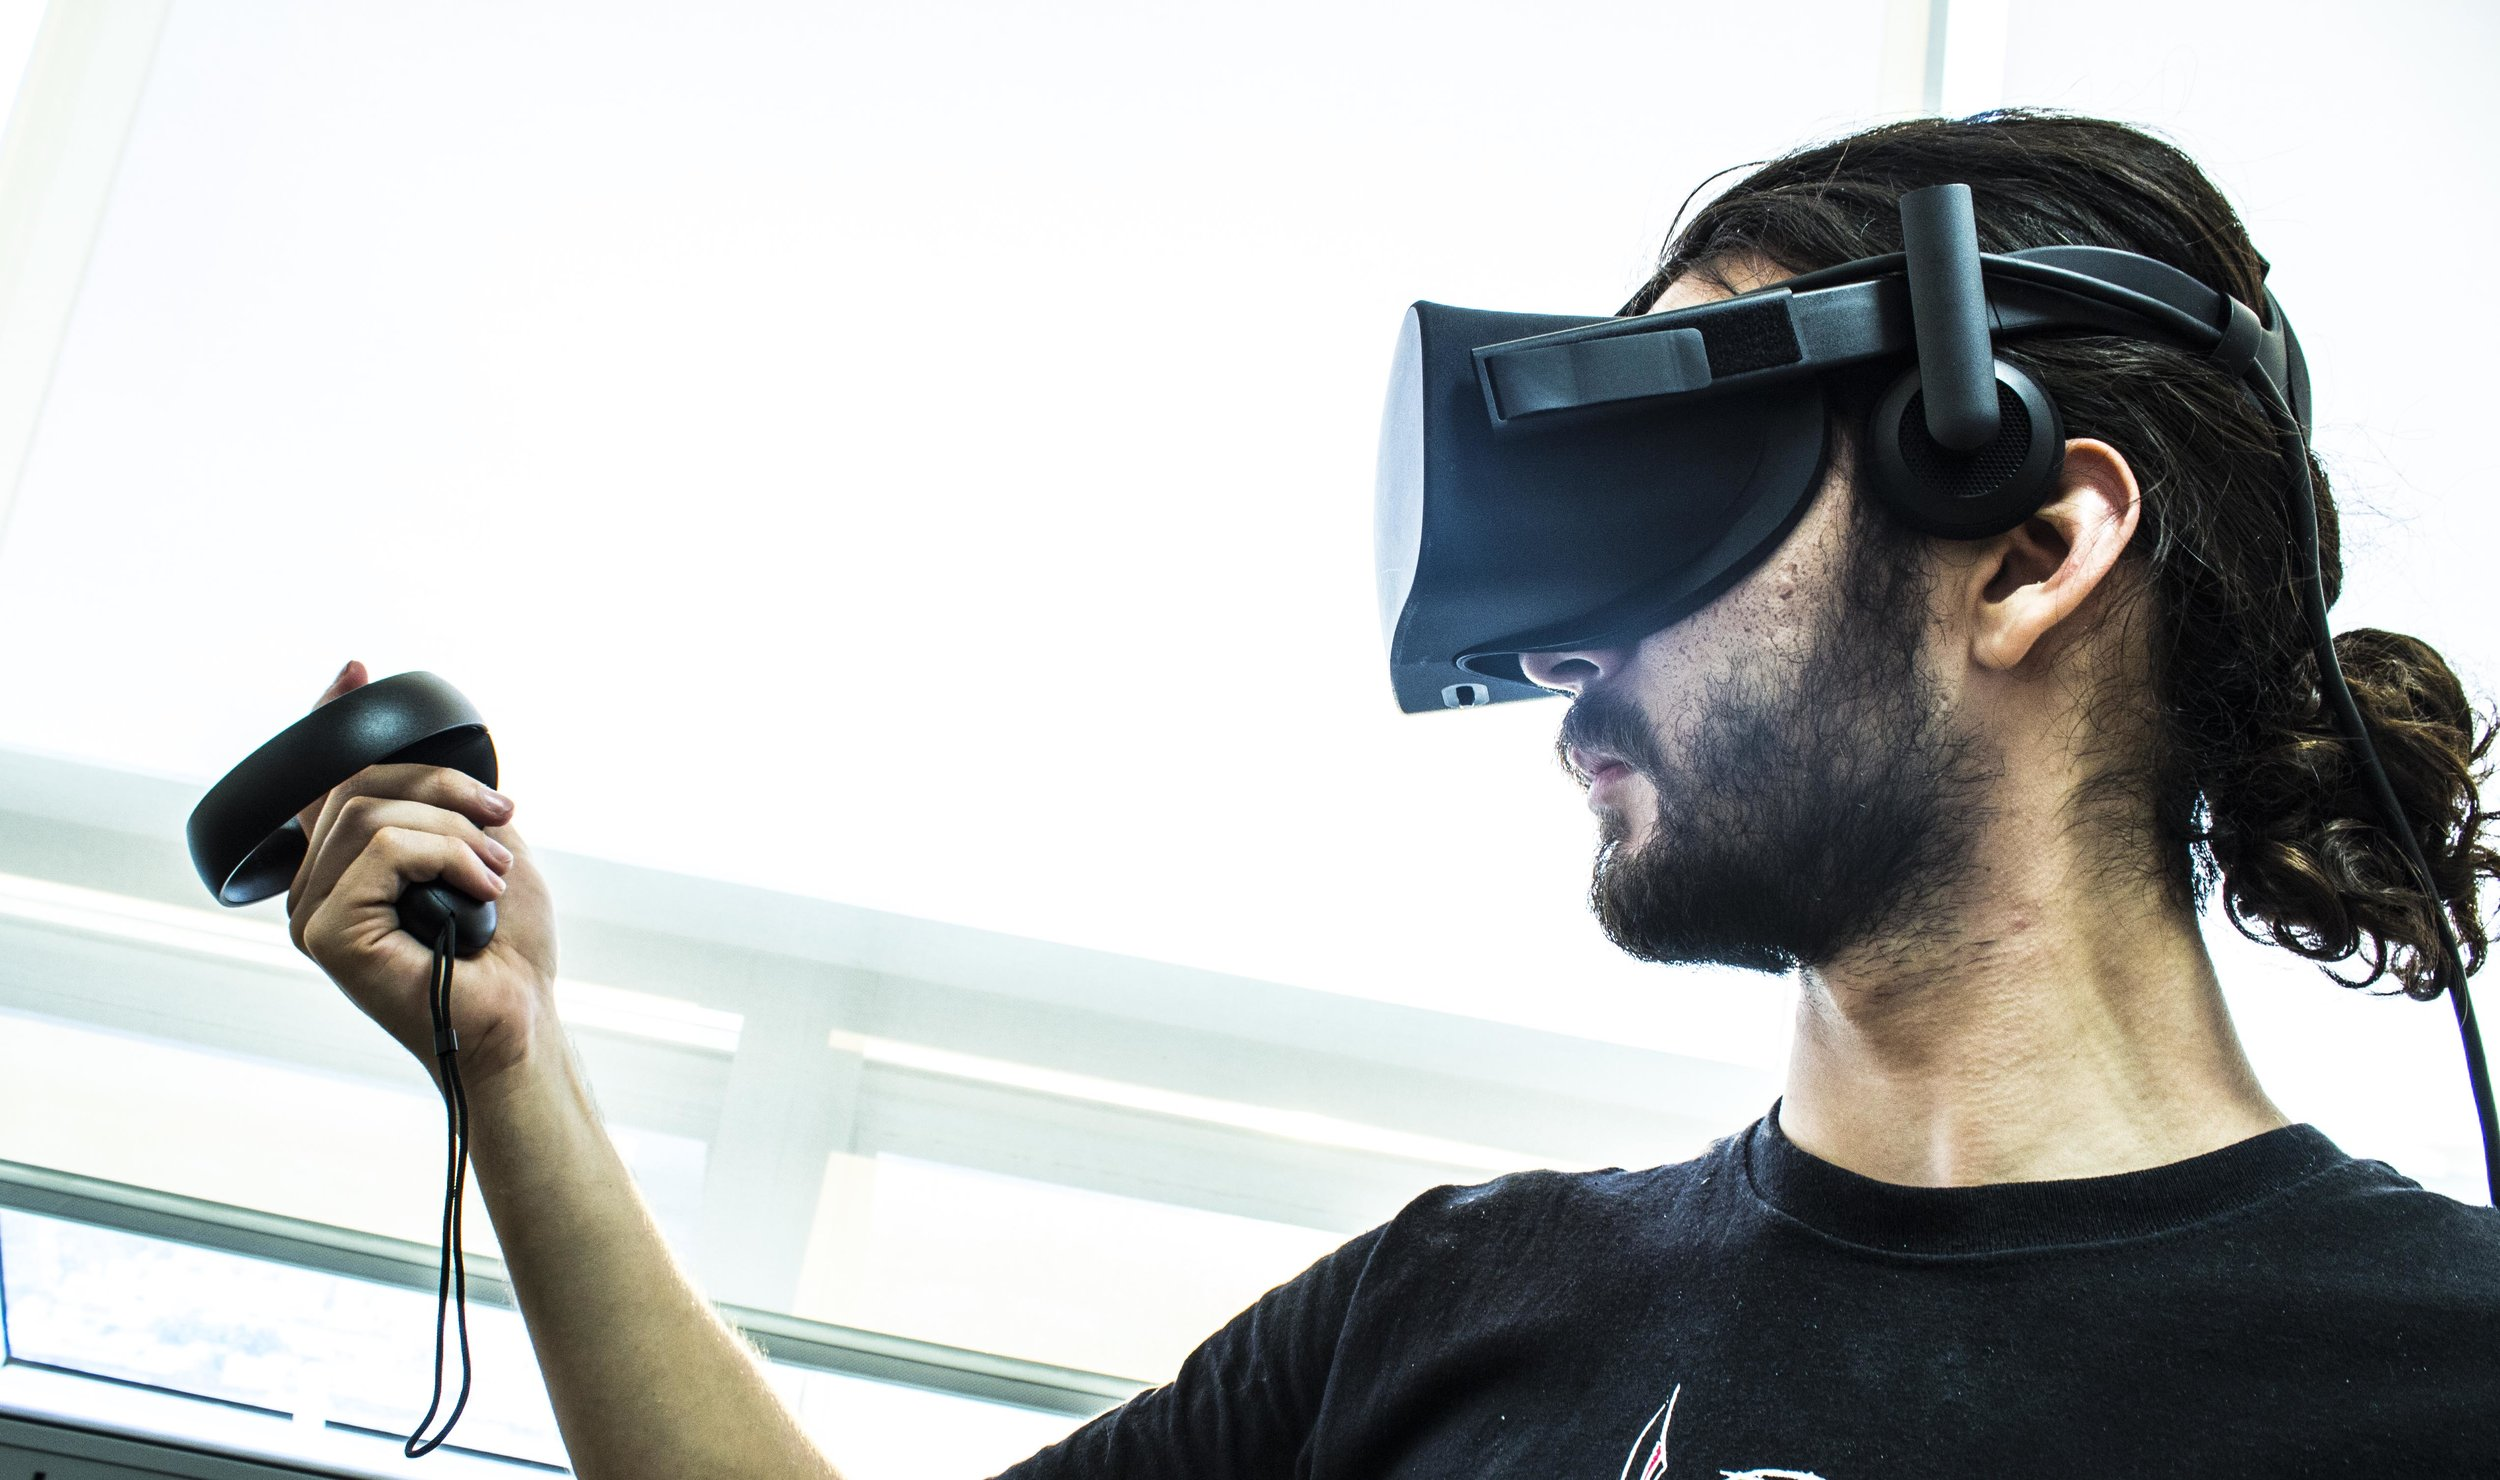 - Virtual Reality (VR) it's the visualization and interactionof a user inside an environment with realisticappearance simulated in a computer and displayed througha Virtual Reality headset